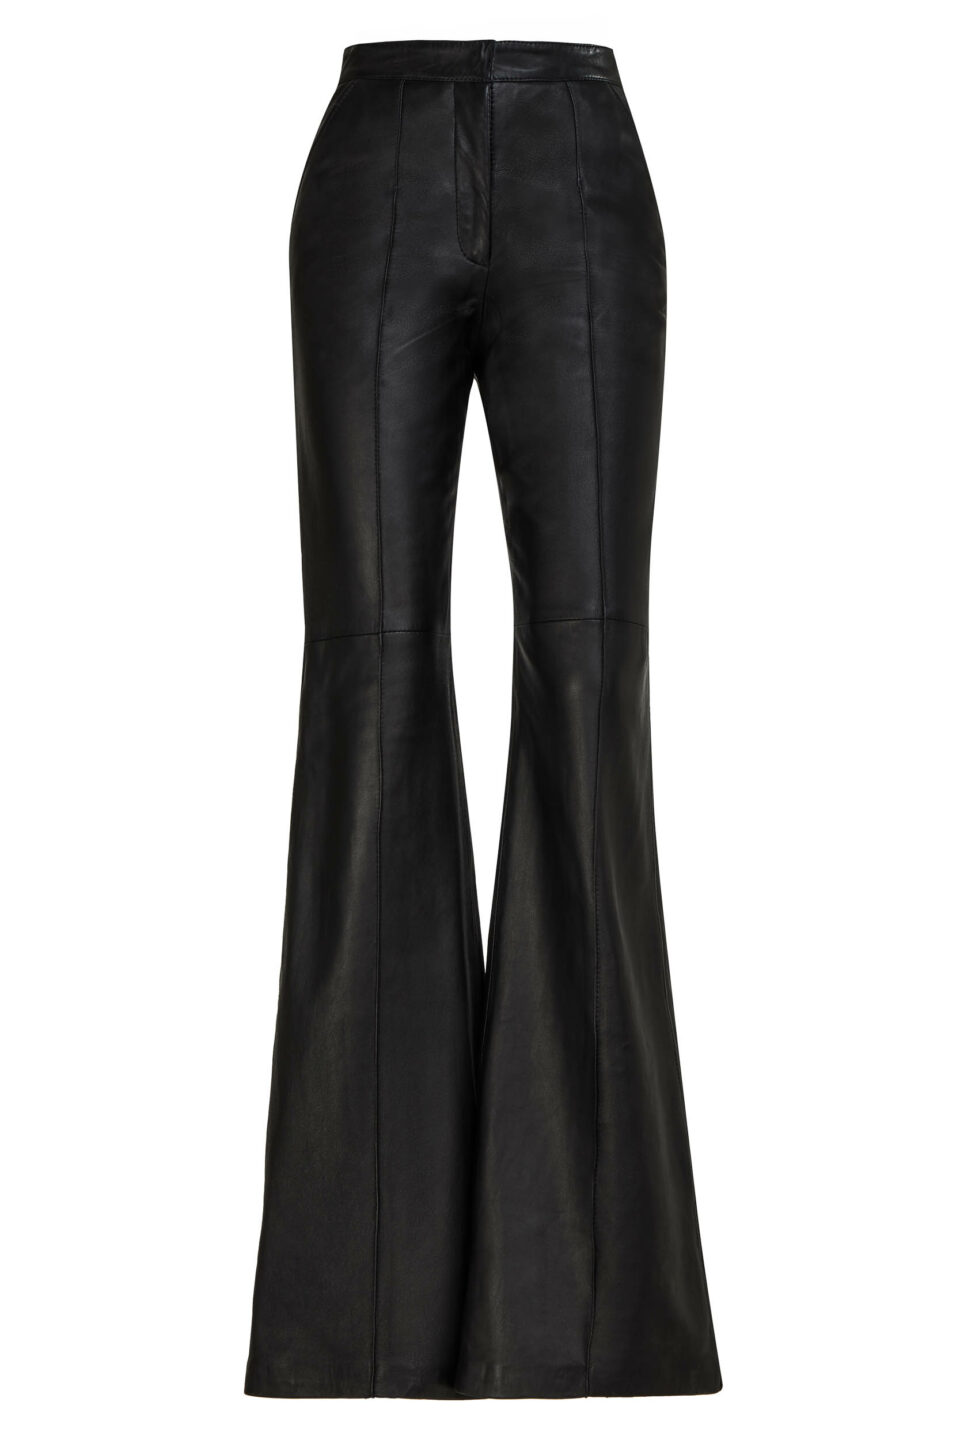 Denie PR2151 Black Soft Lamb-SkinLeather Tailored Wide-Leg Pants with Pintuck Seams